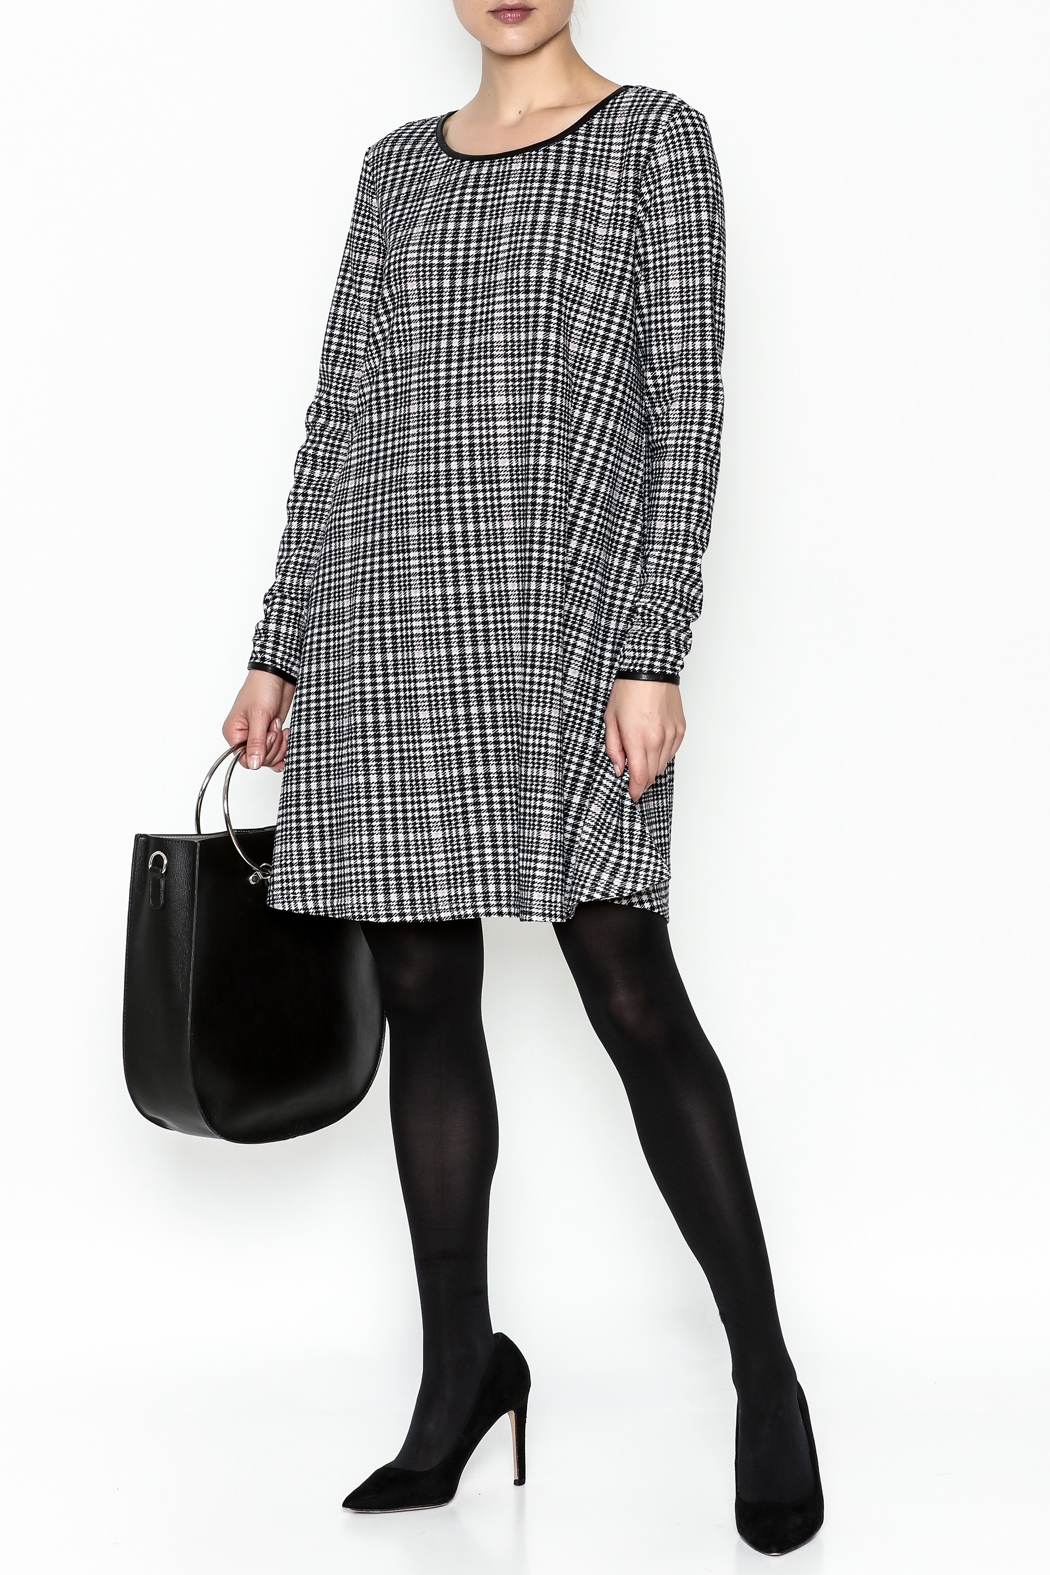 Charlie Paige Houndstooth Check Dress - Side Cropped Image